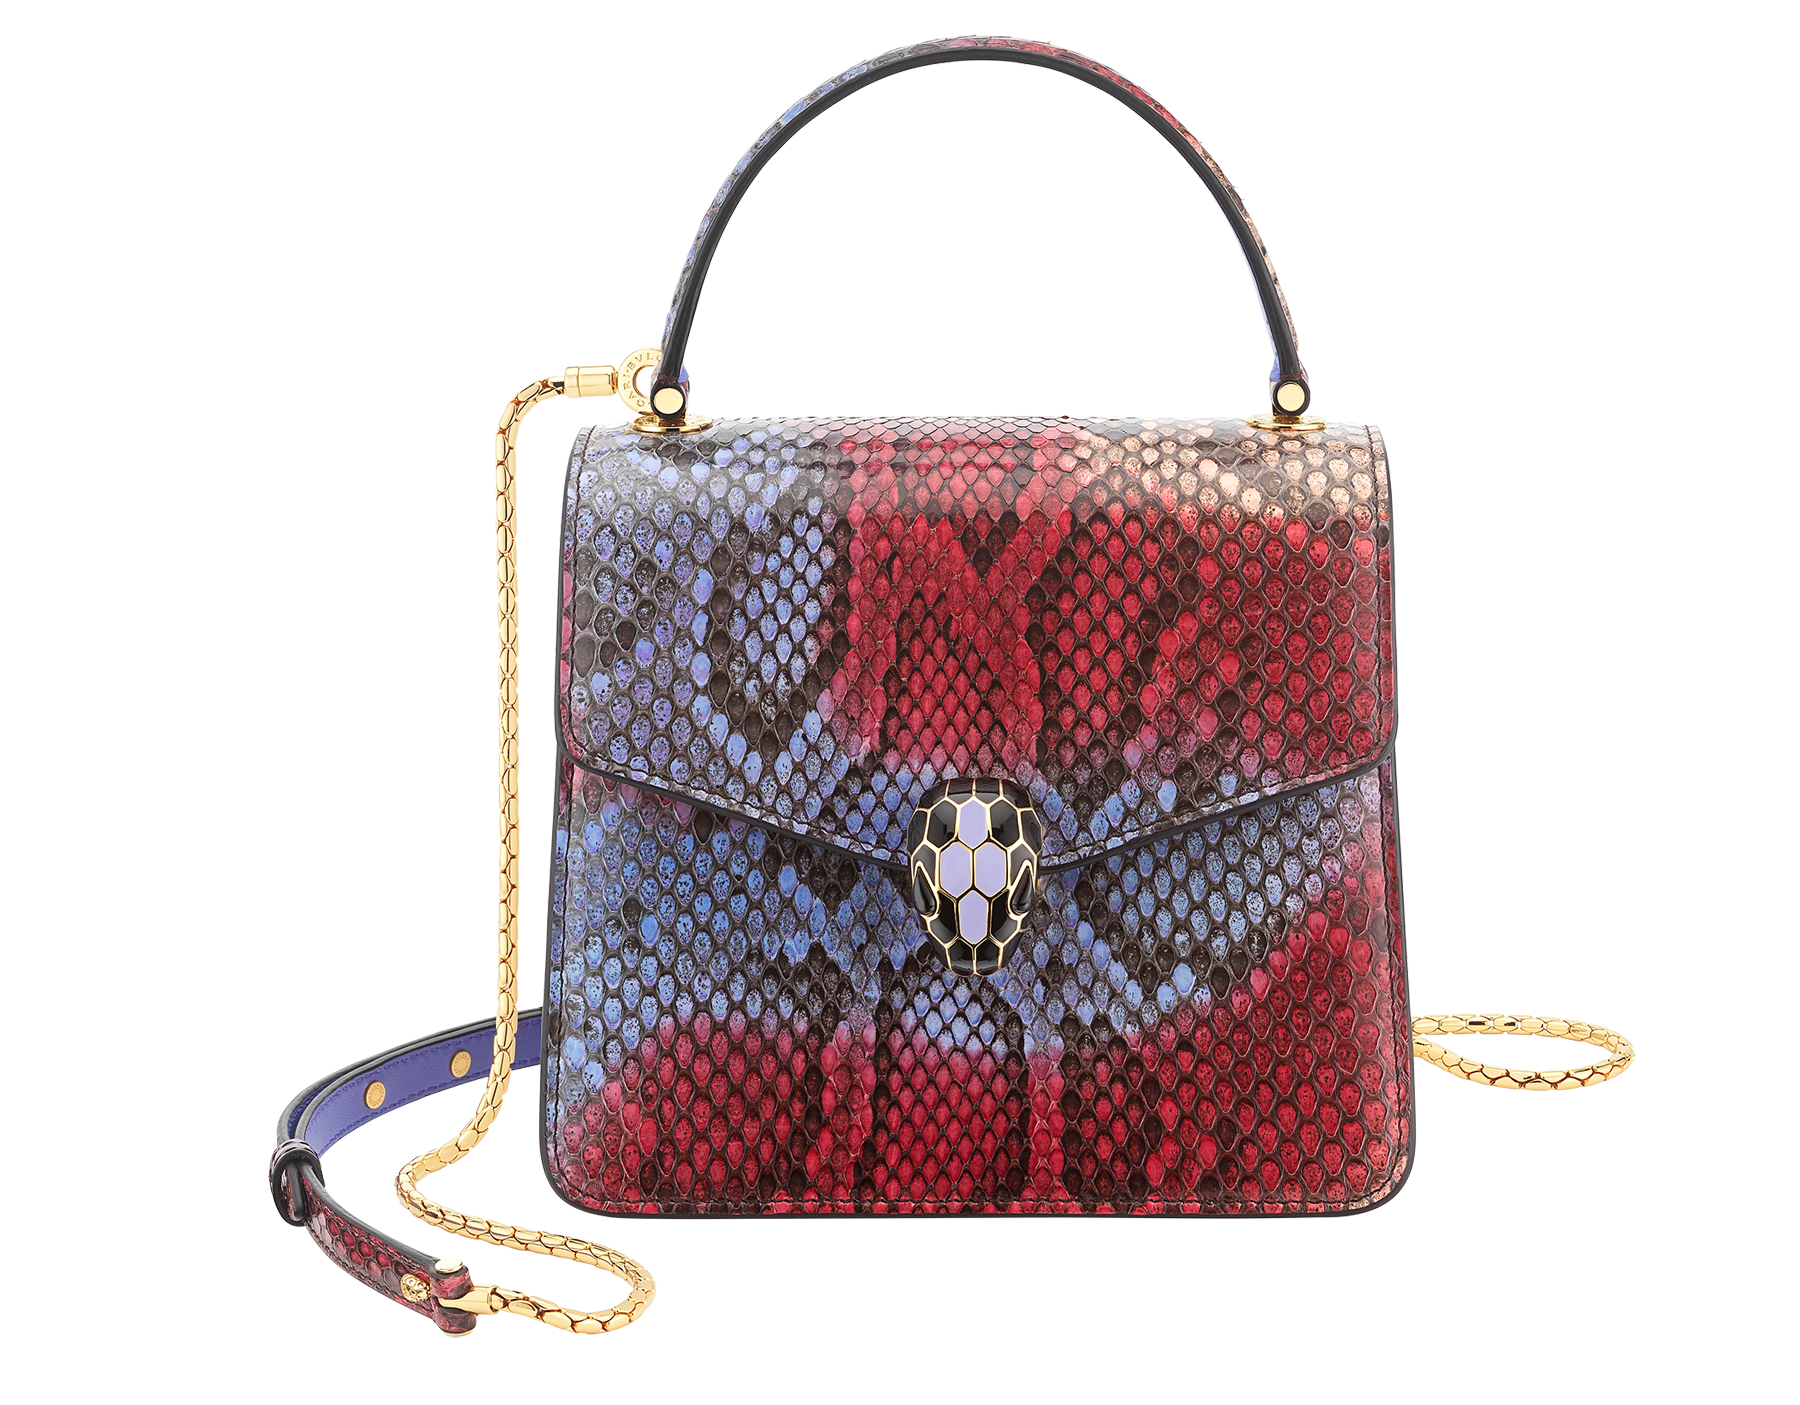 """""""Serpenti Forever """" top handle bag in multicolor """"Chimera"""" python skin with Lavander Amethyst lilac nappa leather internal lining. Tempting snakehead closure in gold plated brass enriched with black and Lavander lilac enamel, and black onyx eyes 290579 image 1"""